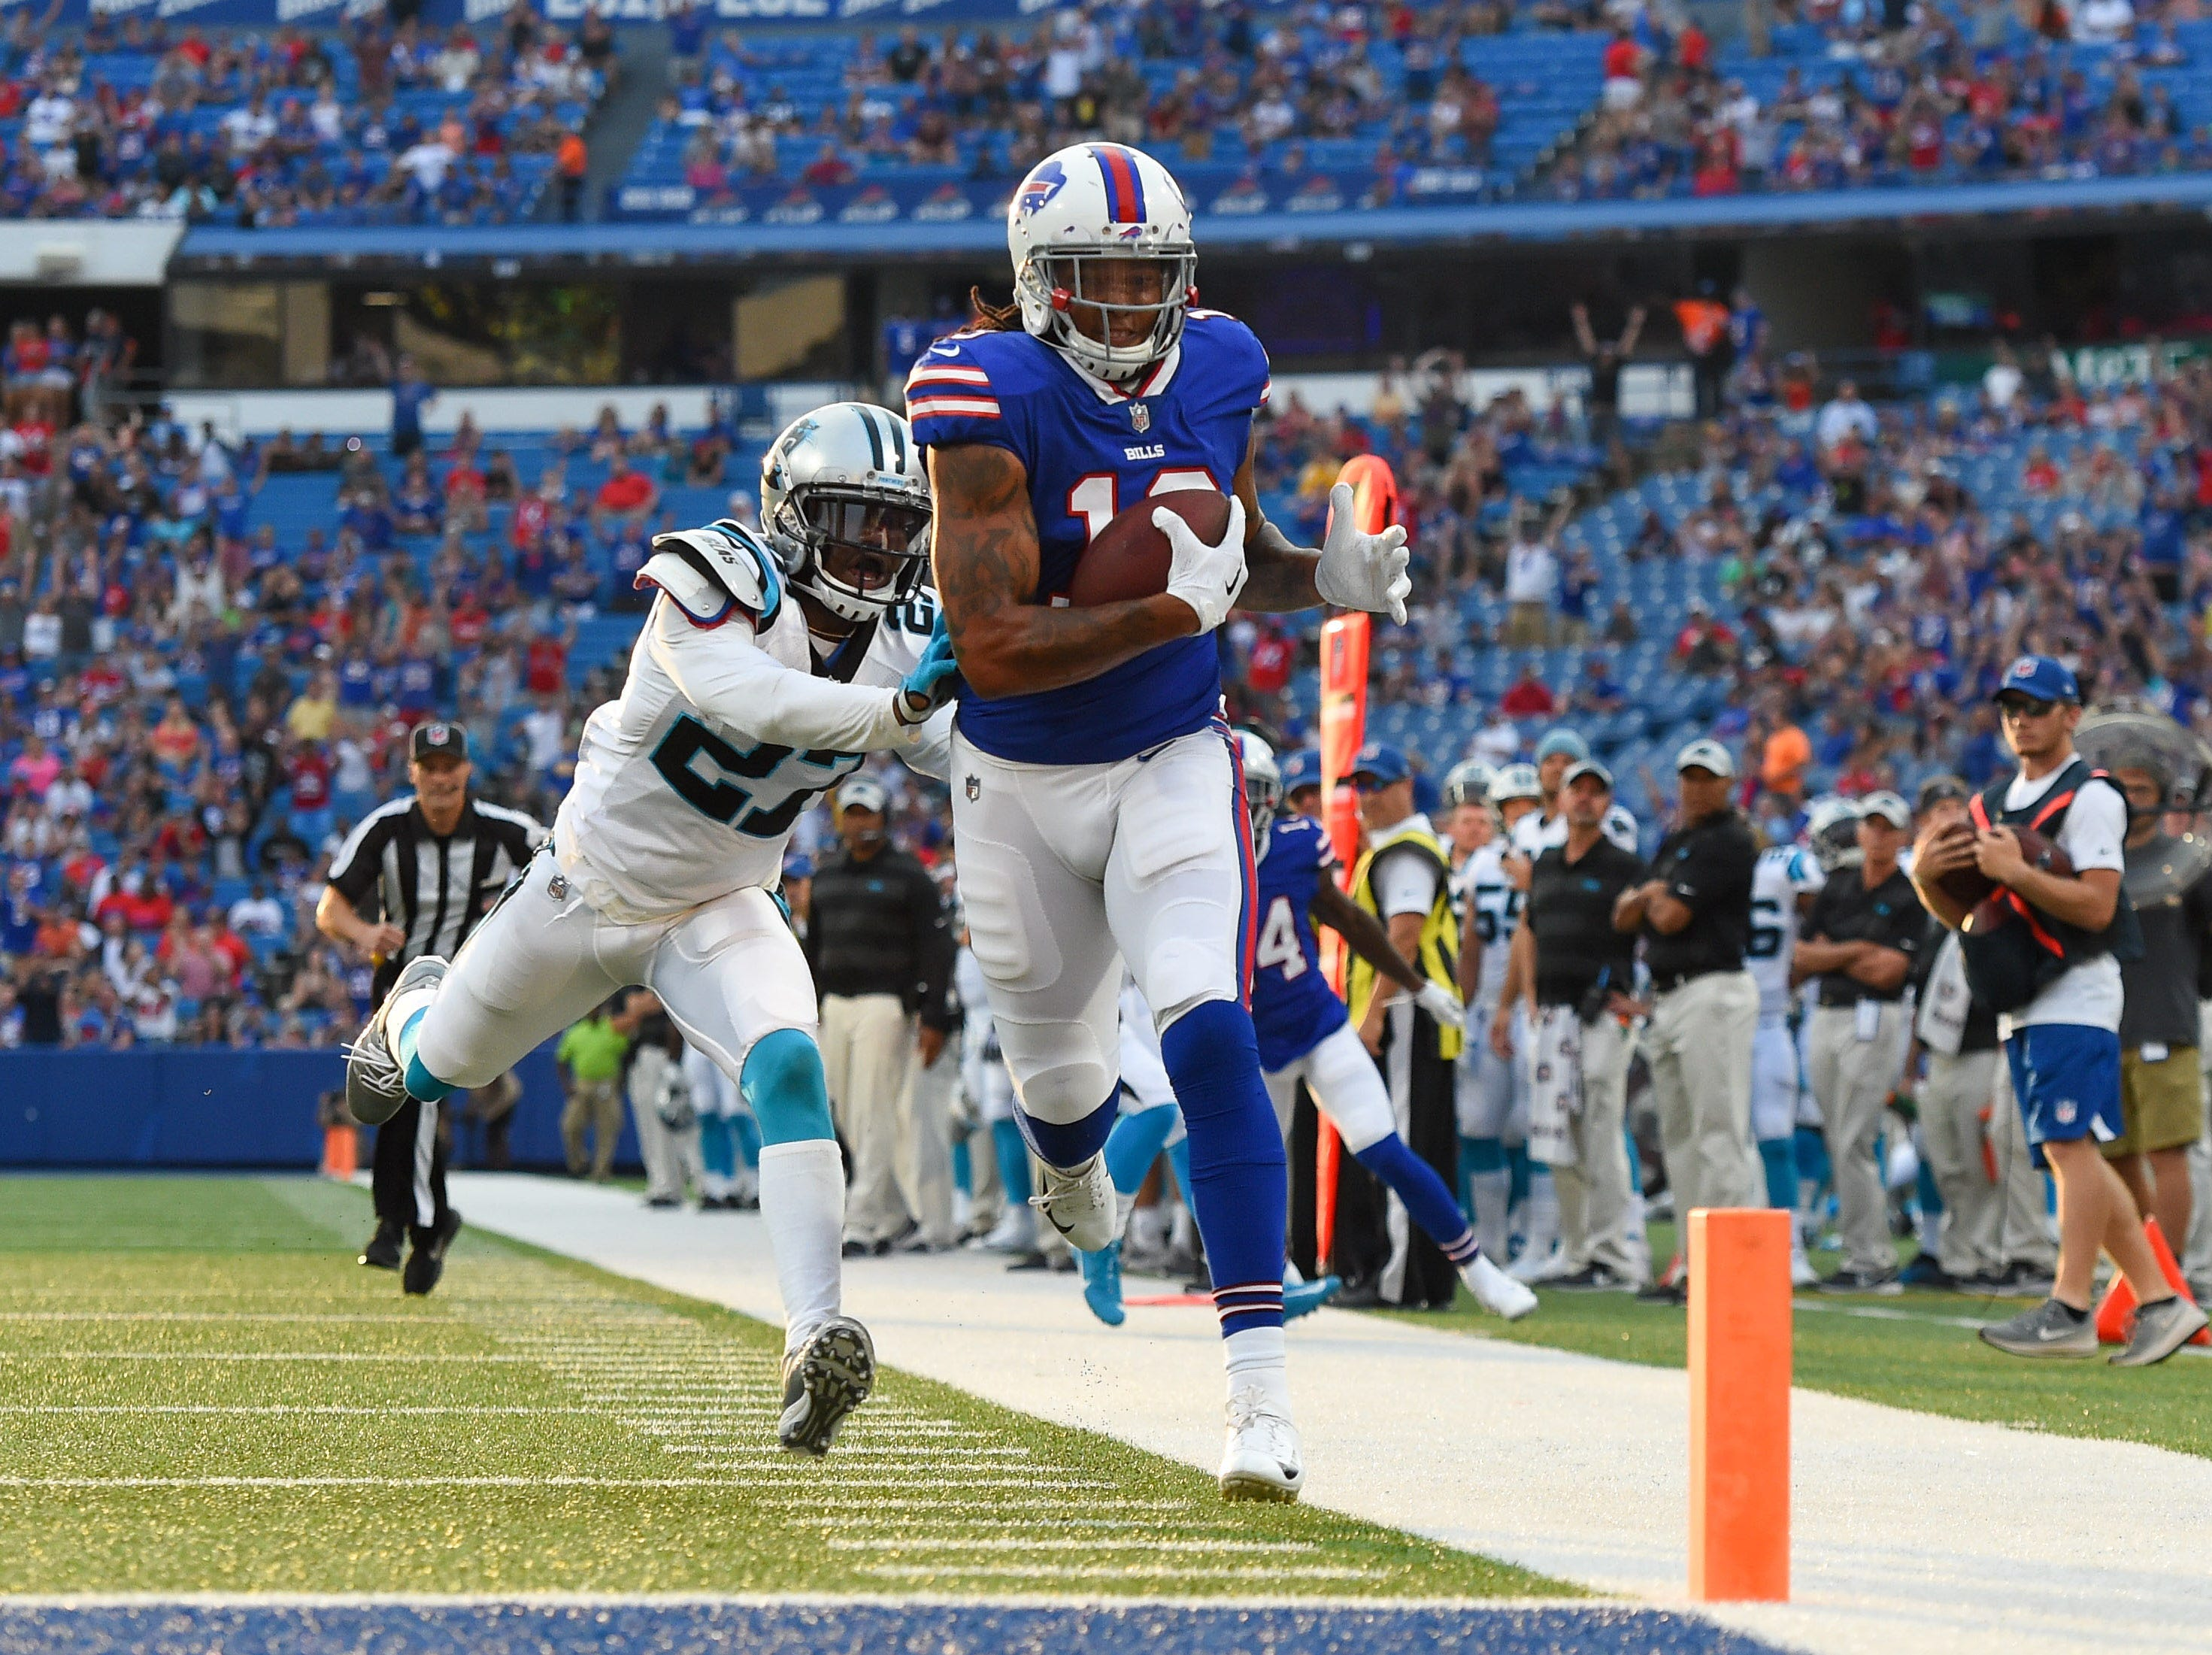 Aug 9, 2018; Orchard Park, NY, USA; Buffalo Bills wide receiver Kelvin Benjamin (13) runs into the end zone for a touchdown in front of Carolina Panthers cornerback Kevon Seymour (27) during the first quarter at New Era Field. Mandatory Credit: Rich Barnes-USA TODAY Sports